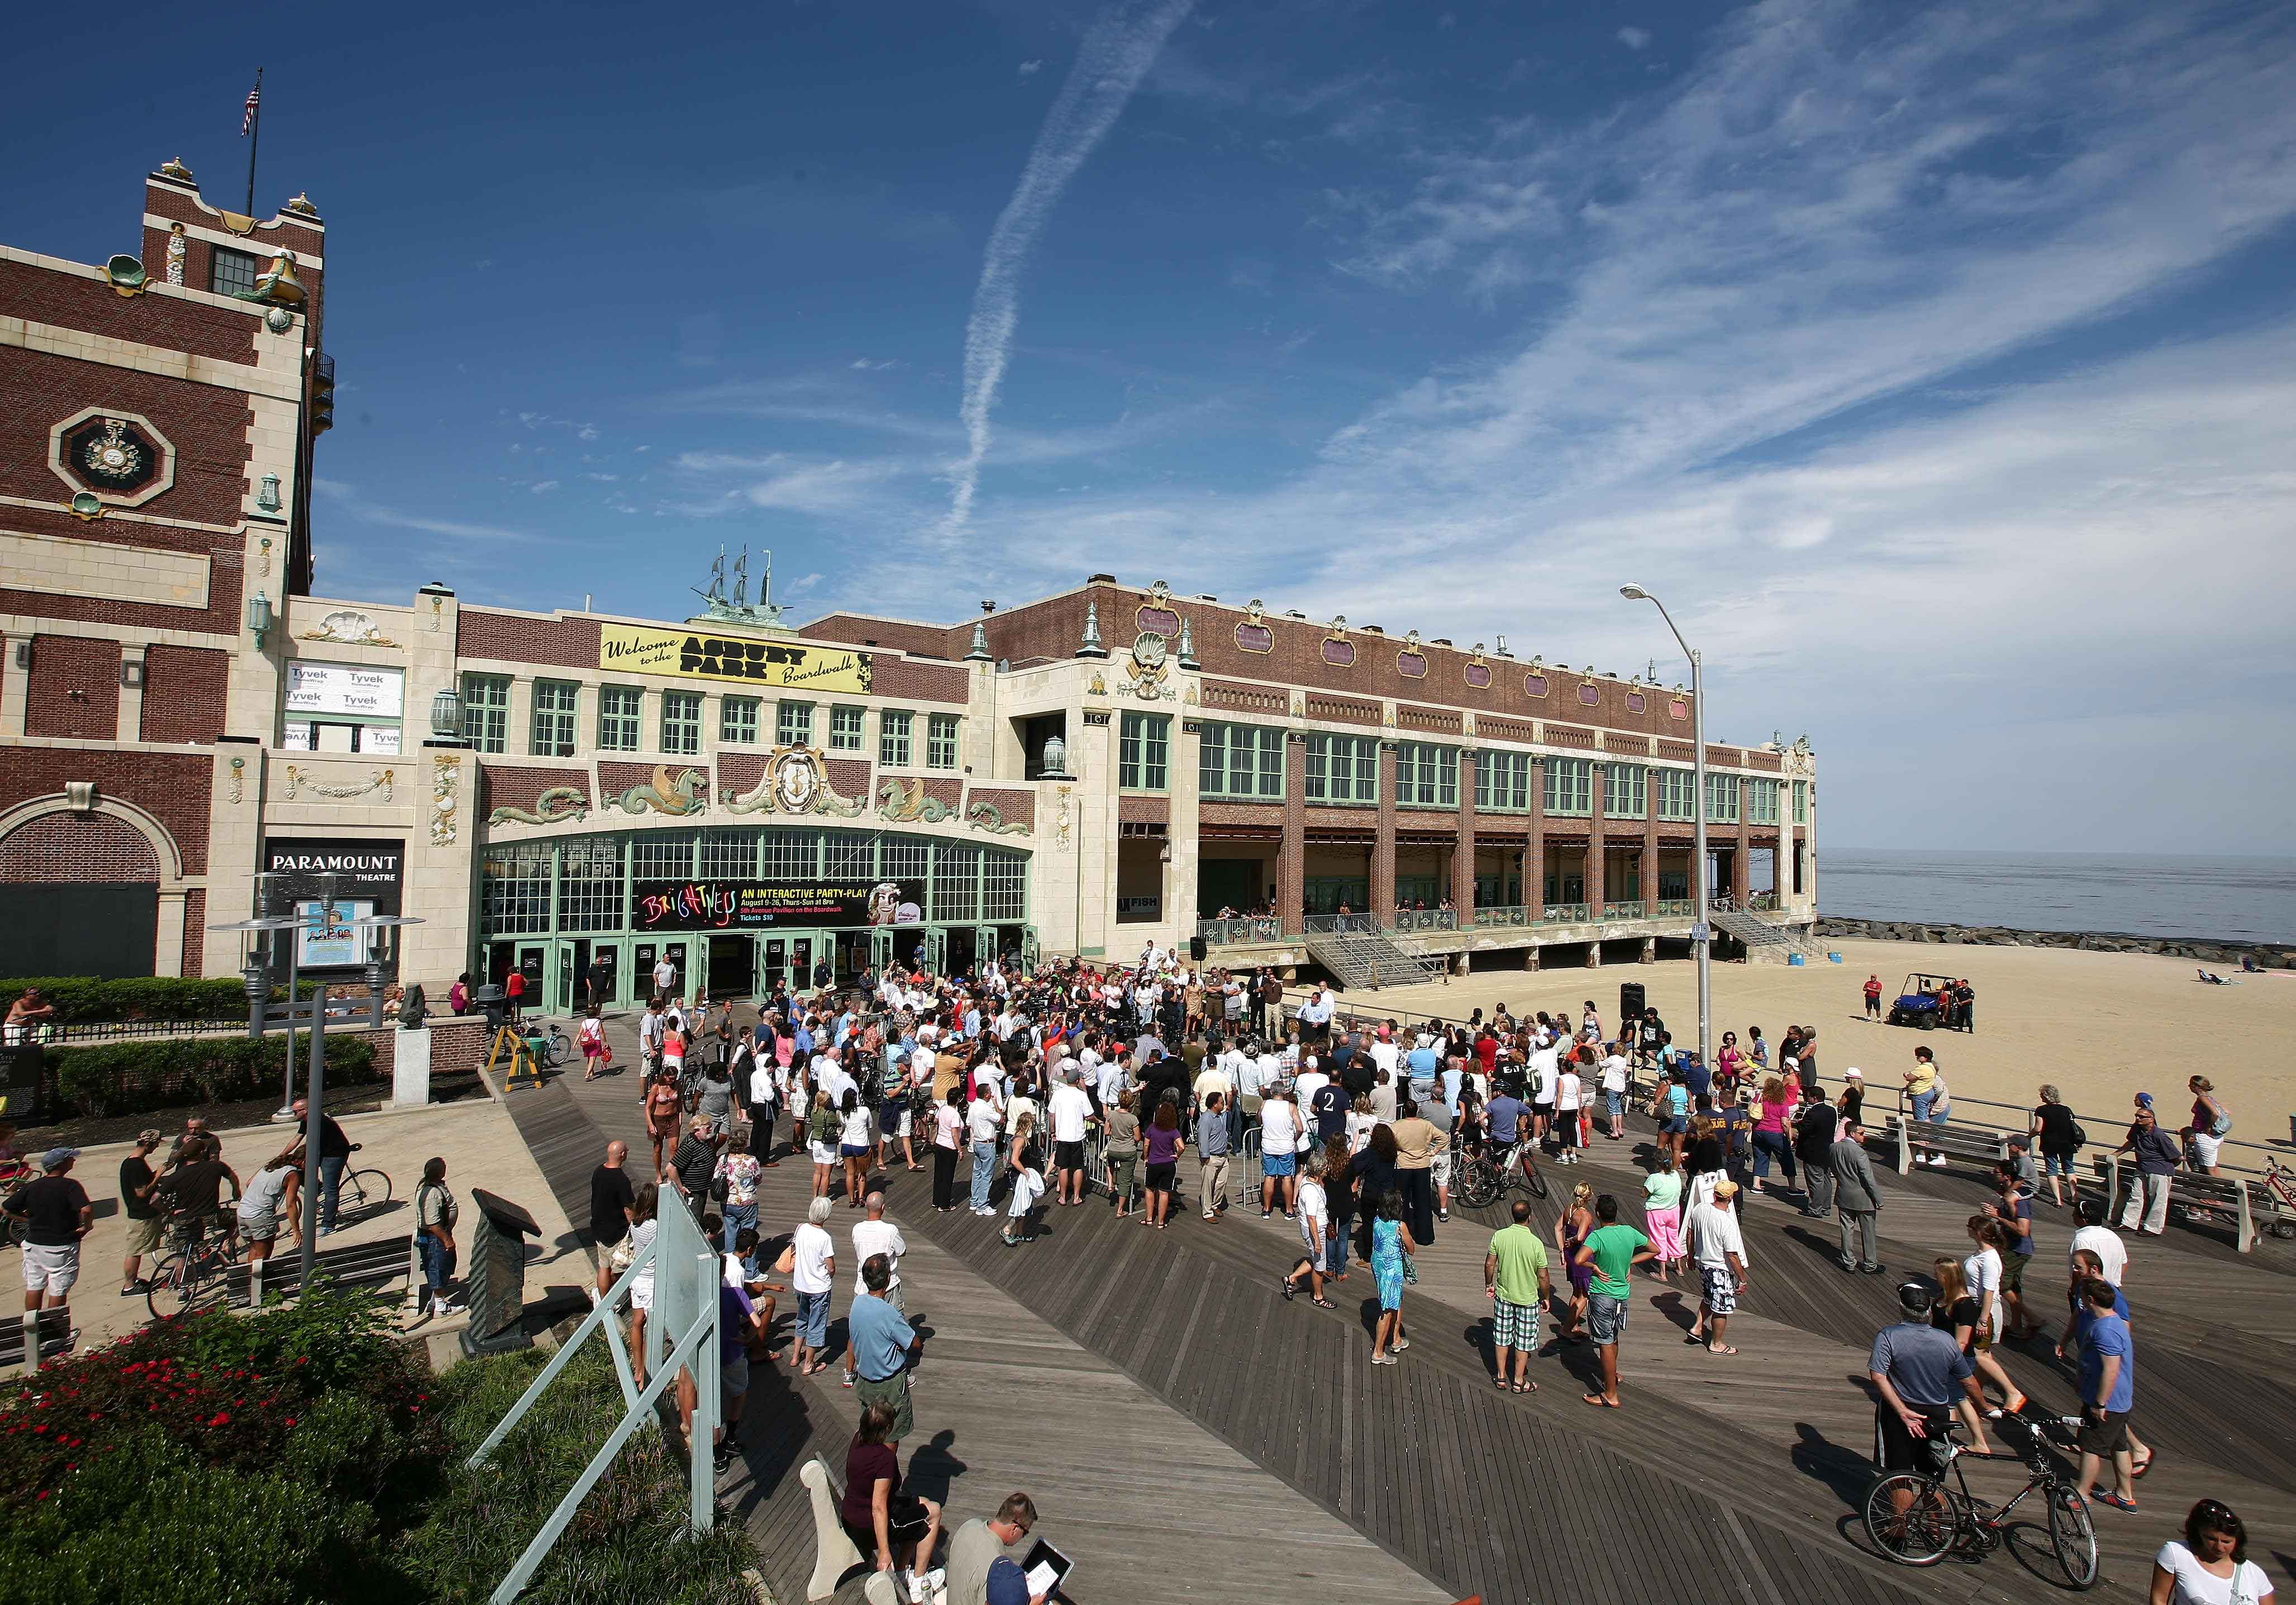 The Asbury Park Boardwalk. Credit: State Of The Arts